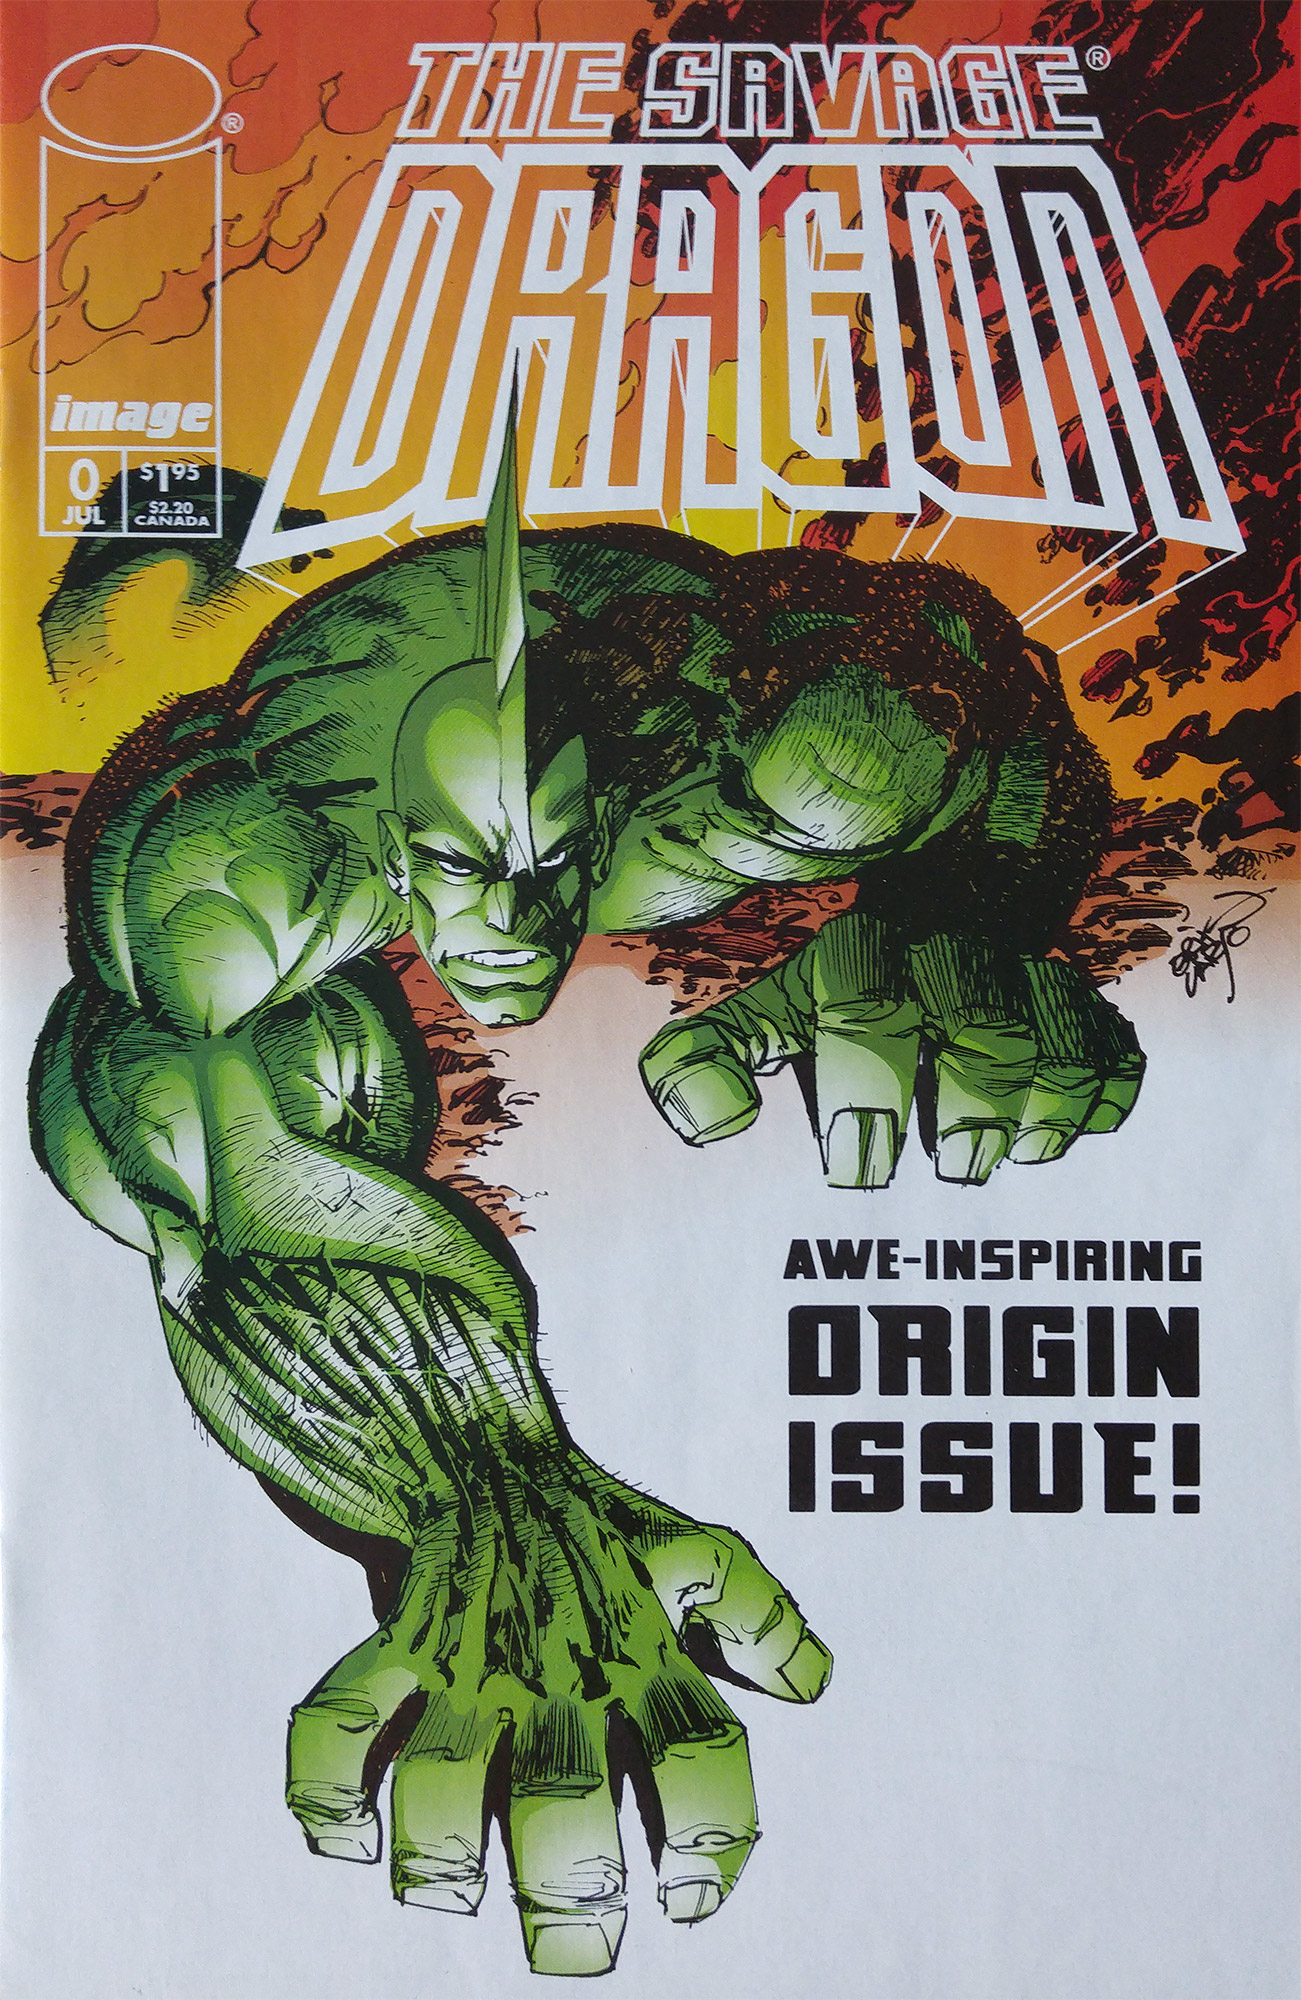 Cover Savage Dragon Vol.2 #0